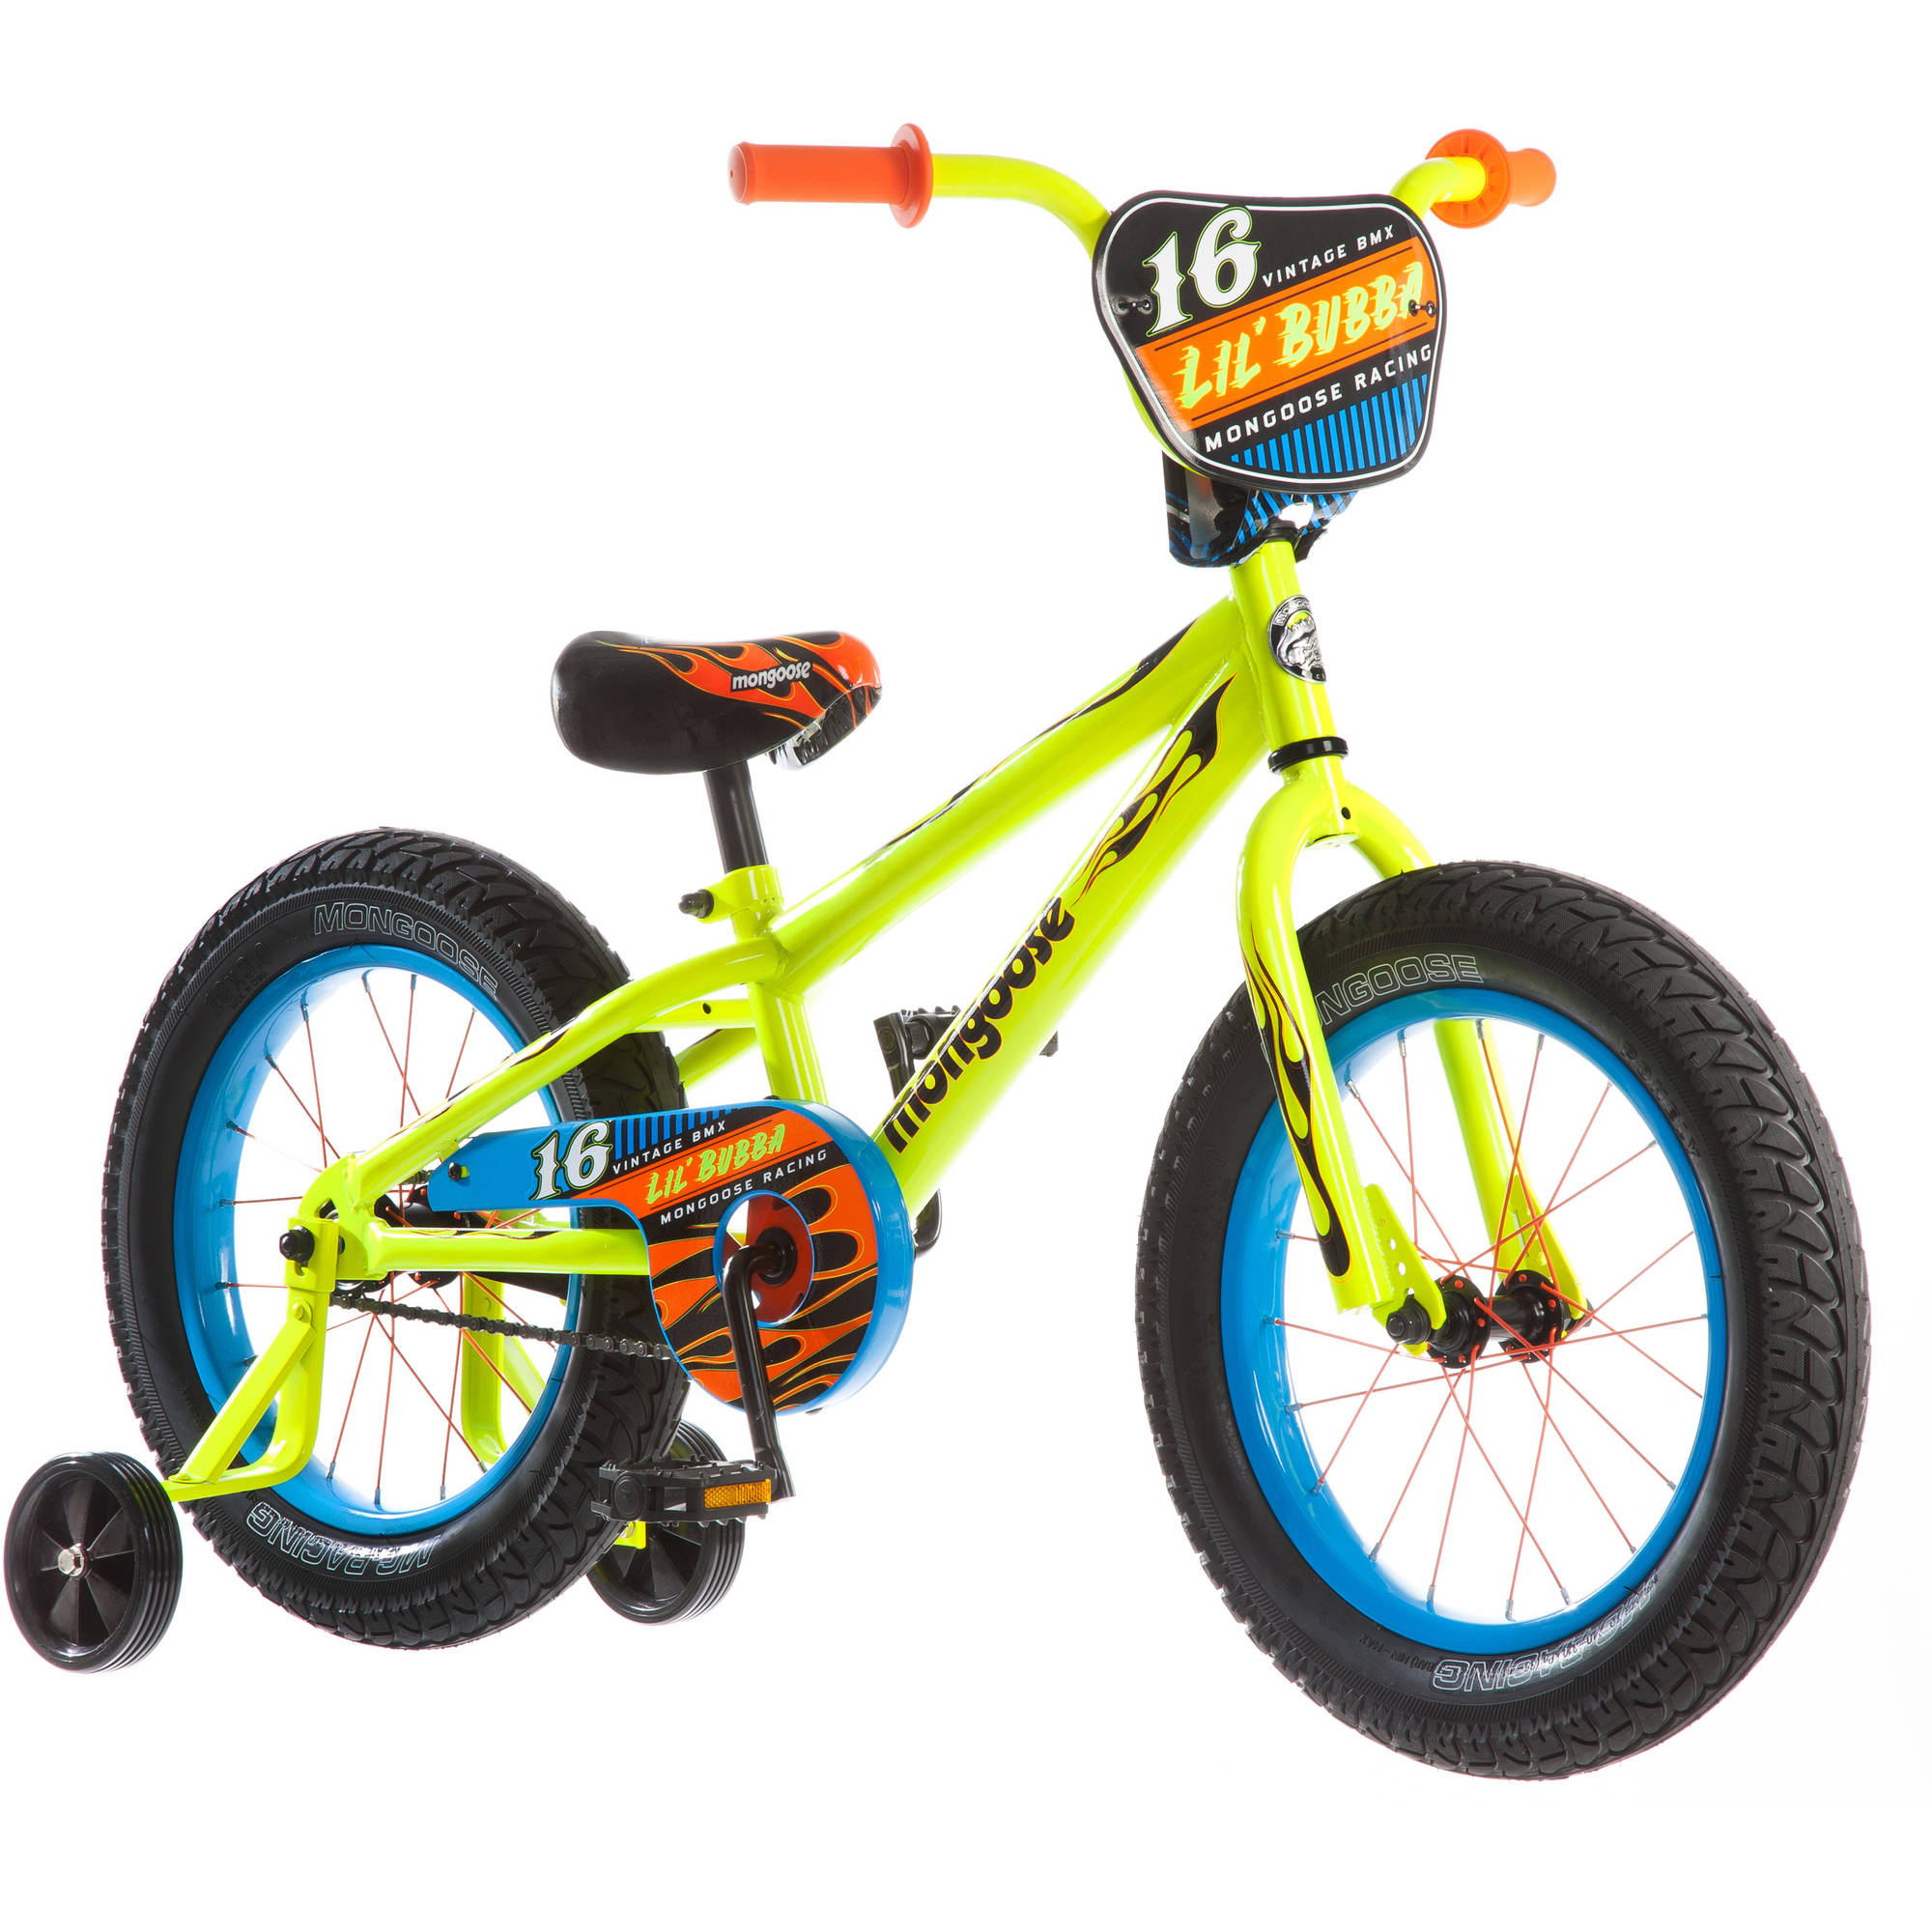 "16"" Mongoose Lil Bubba Boys' Fat Tire Bike, Neon Yellow by Pacific Cycle"